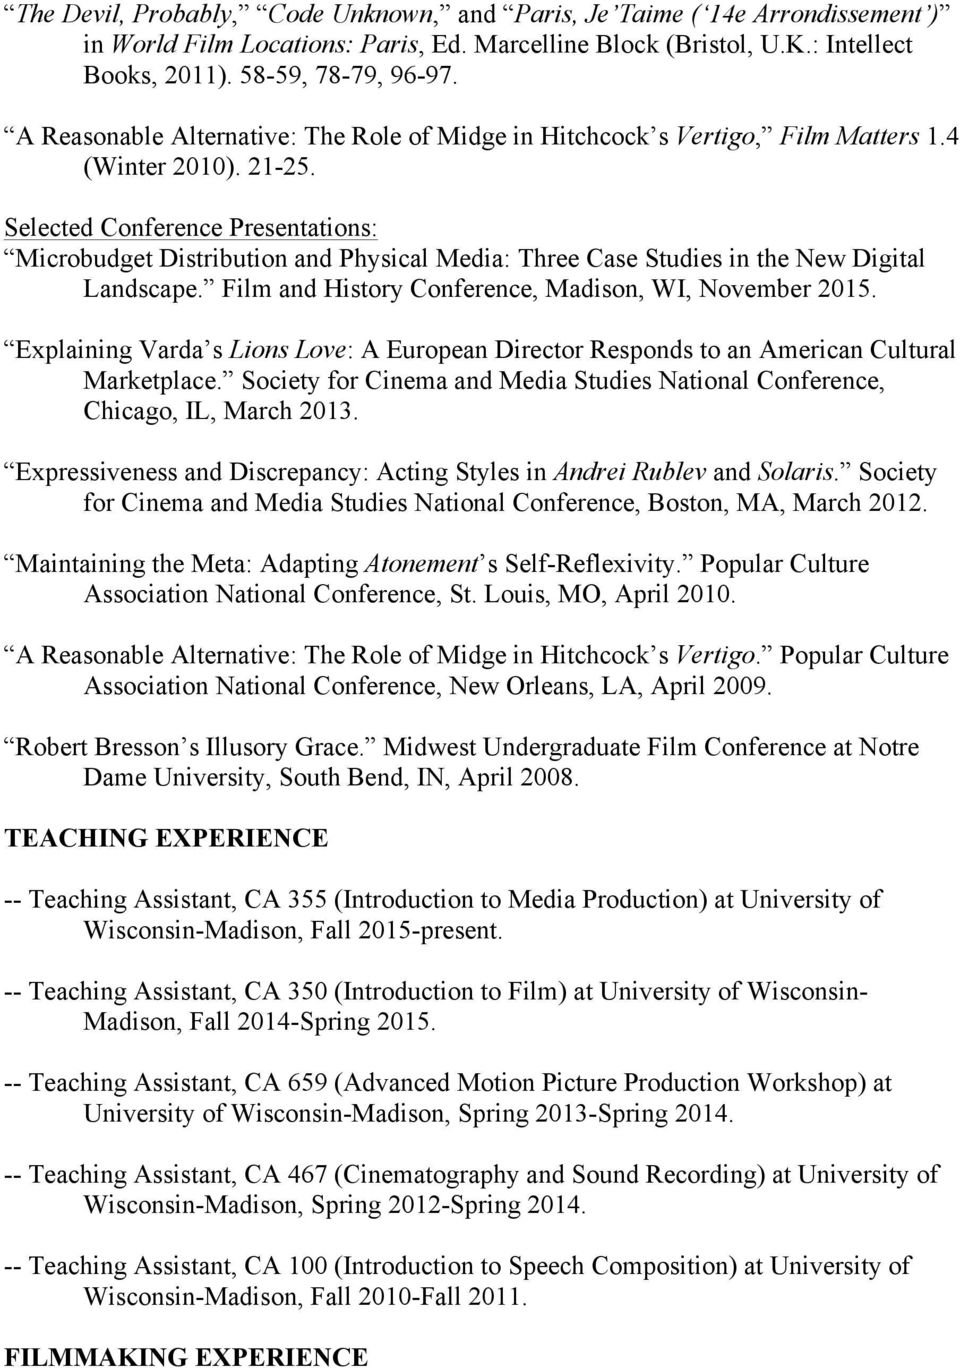 Selected Conference Presentations: Microbudget Distribution and Physical Media: Three Case Studies in the New Digital Landscape. Film and History Conference, Madison, WI, November 2015.